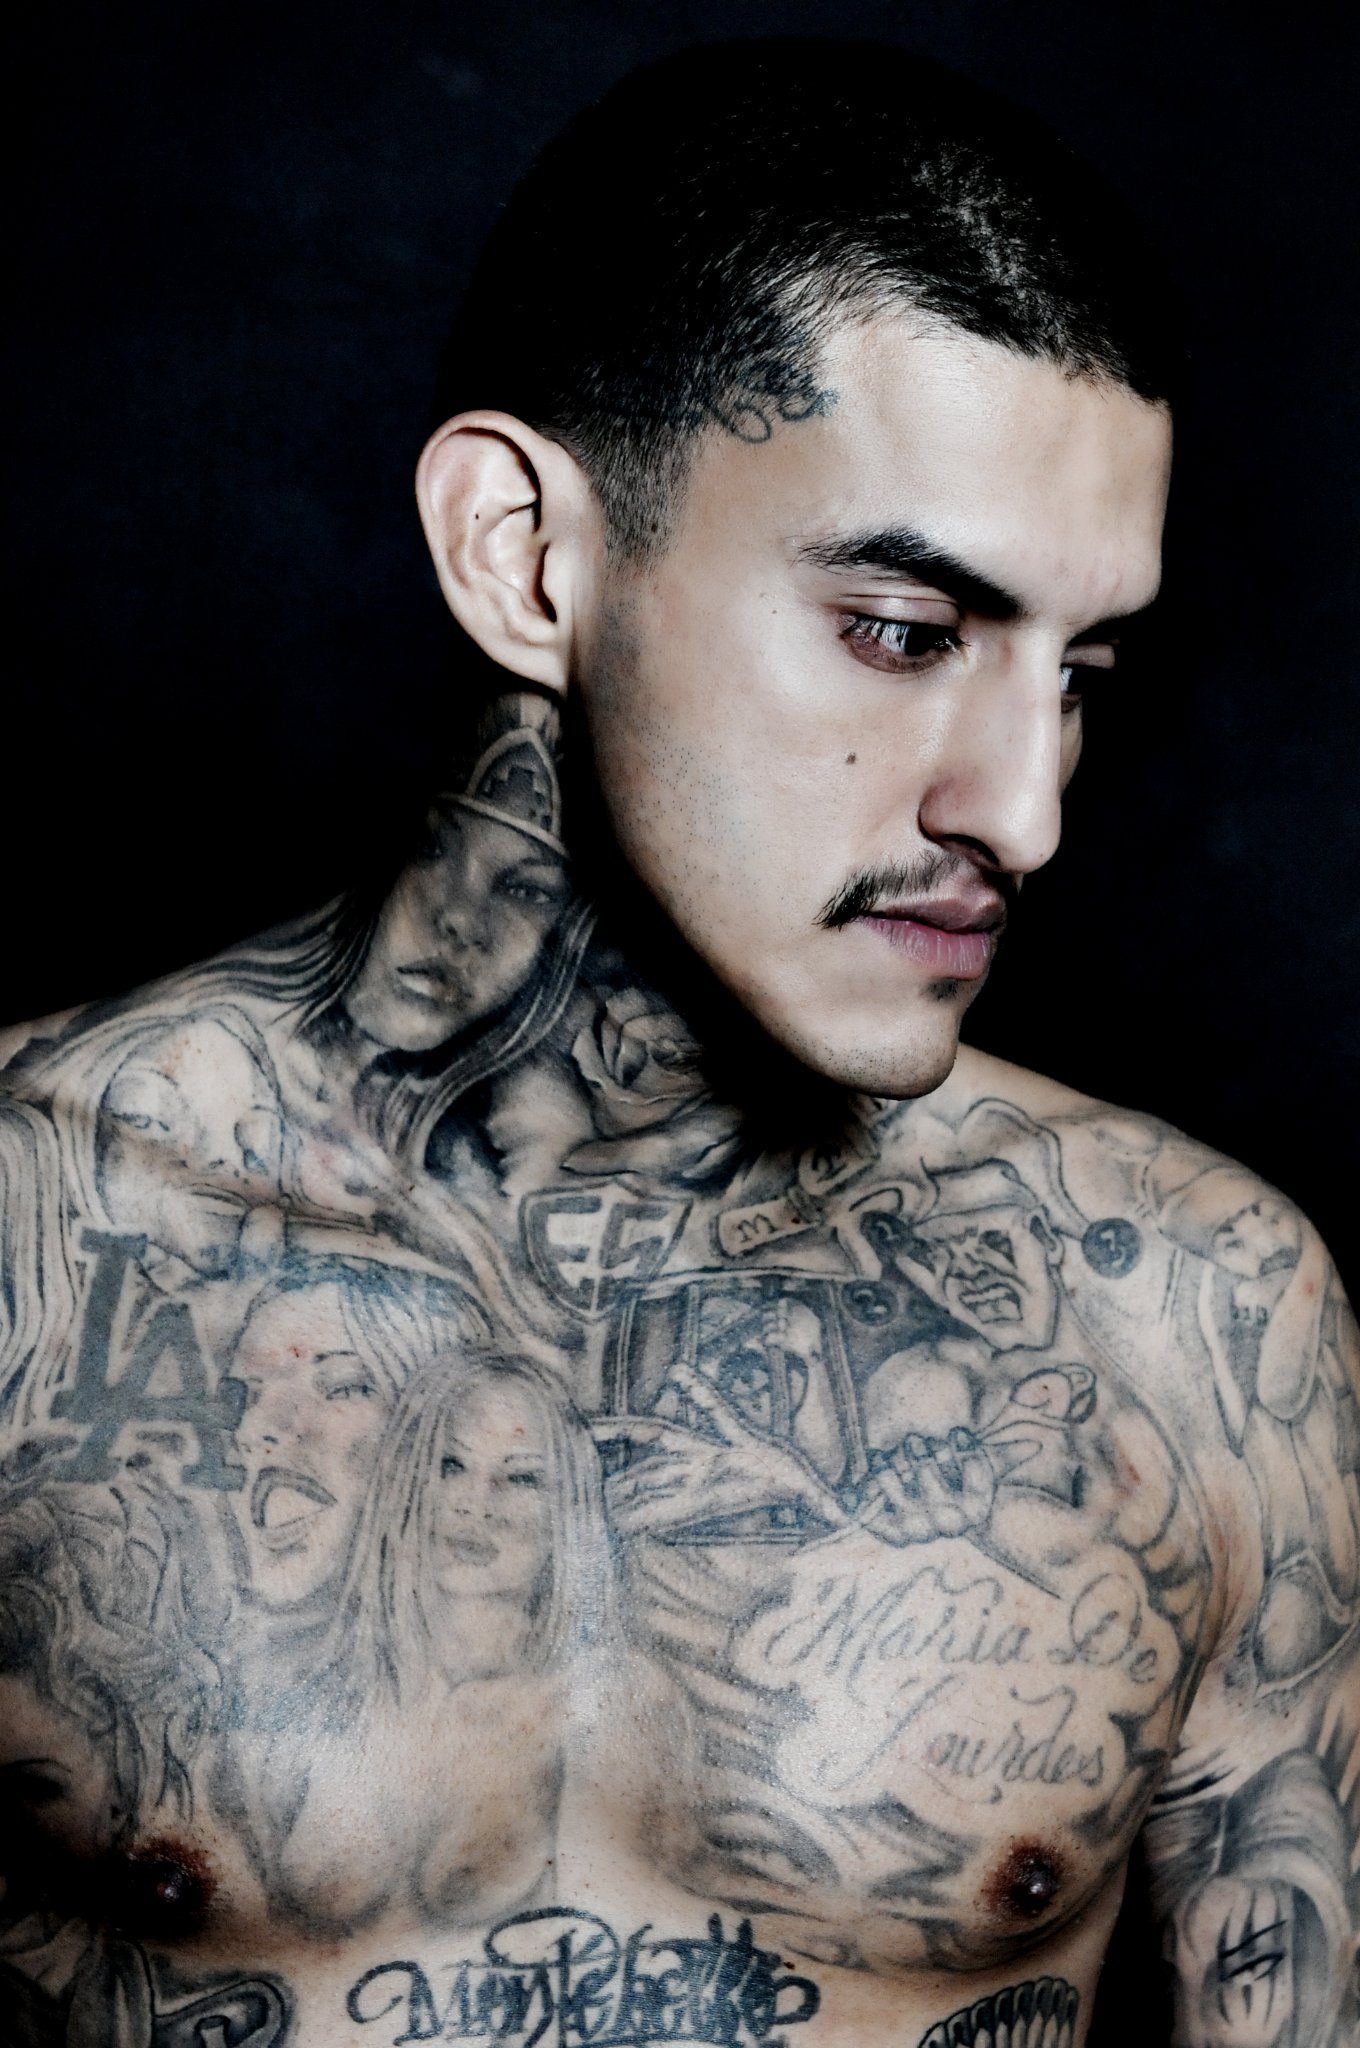 Richard cabral tattoos